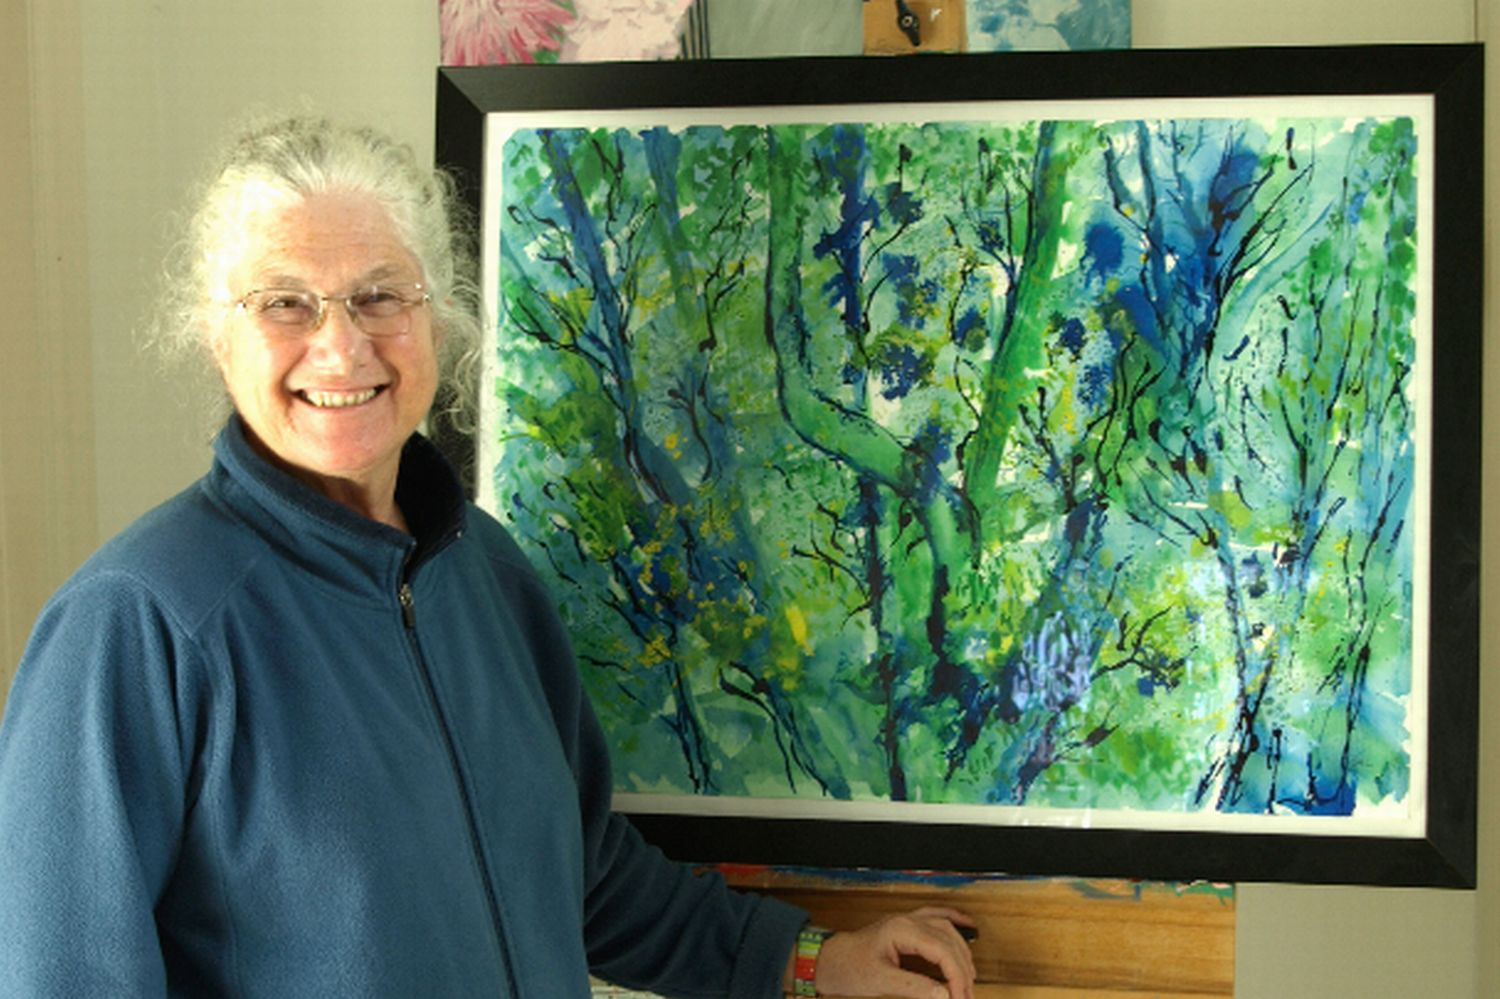 SUE Hammond-Lovatt with with 'Woodland Walk', a work in acrylic ink on watercolour paper.